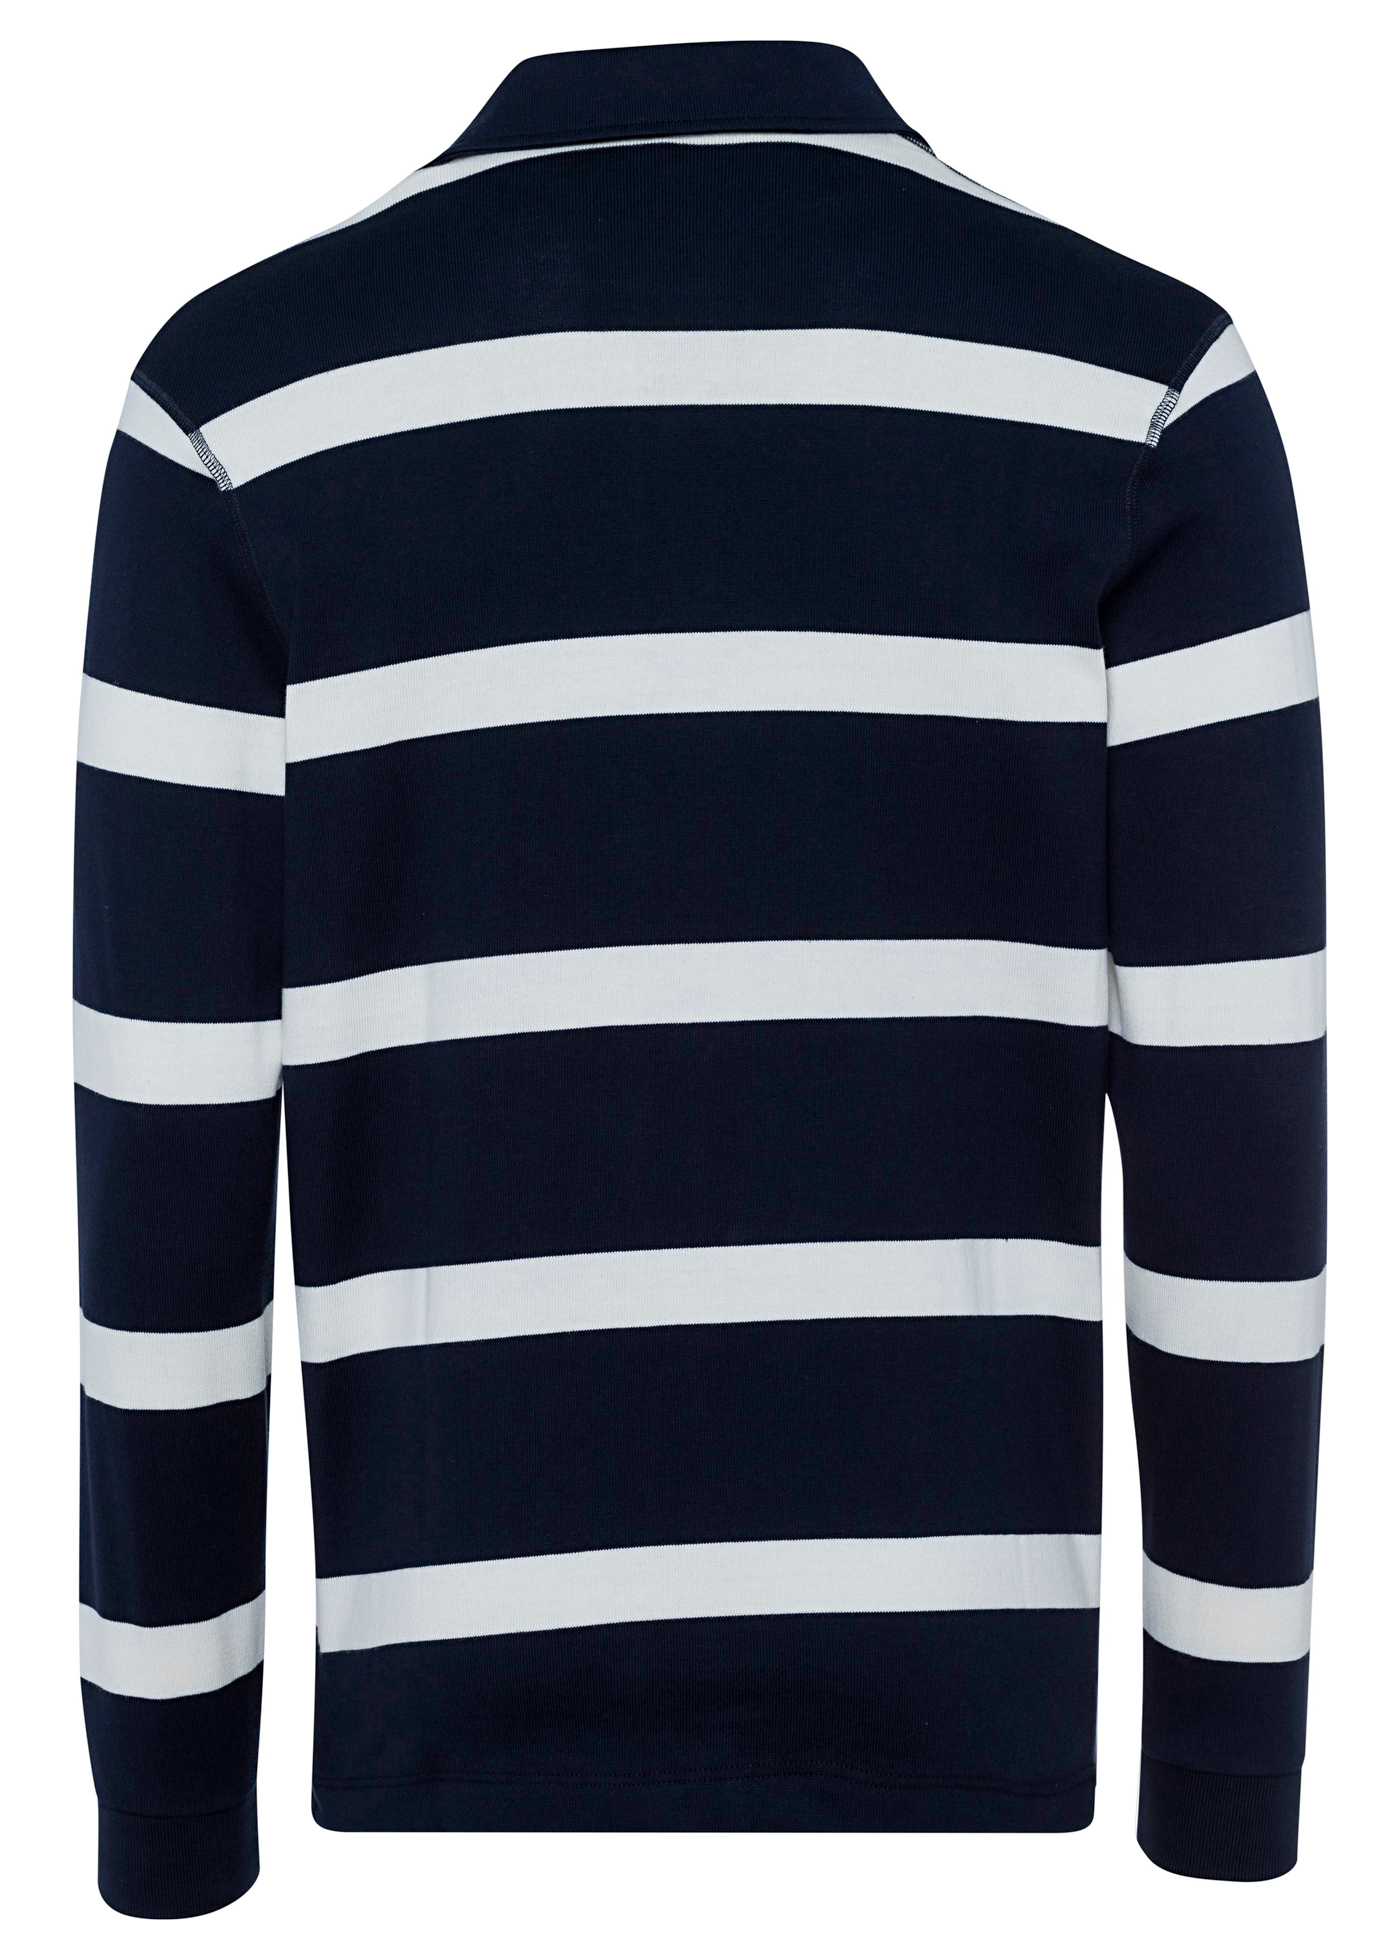 MEN'S KNITTED POLOSHIRT C.W. COTTON image number 1